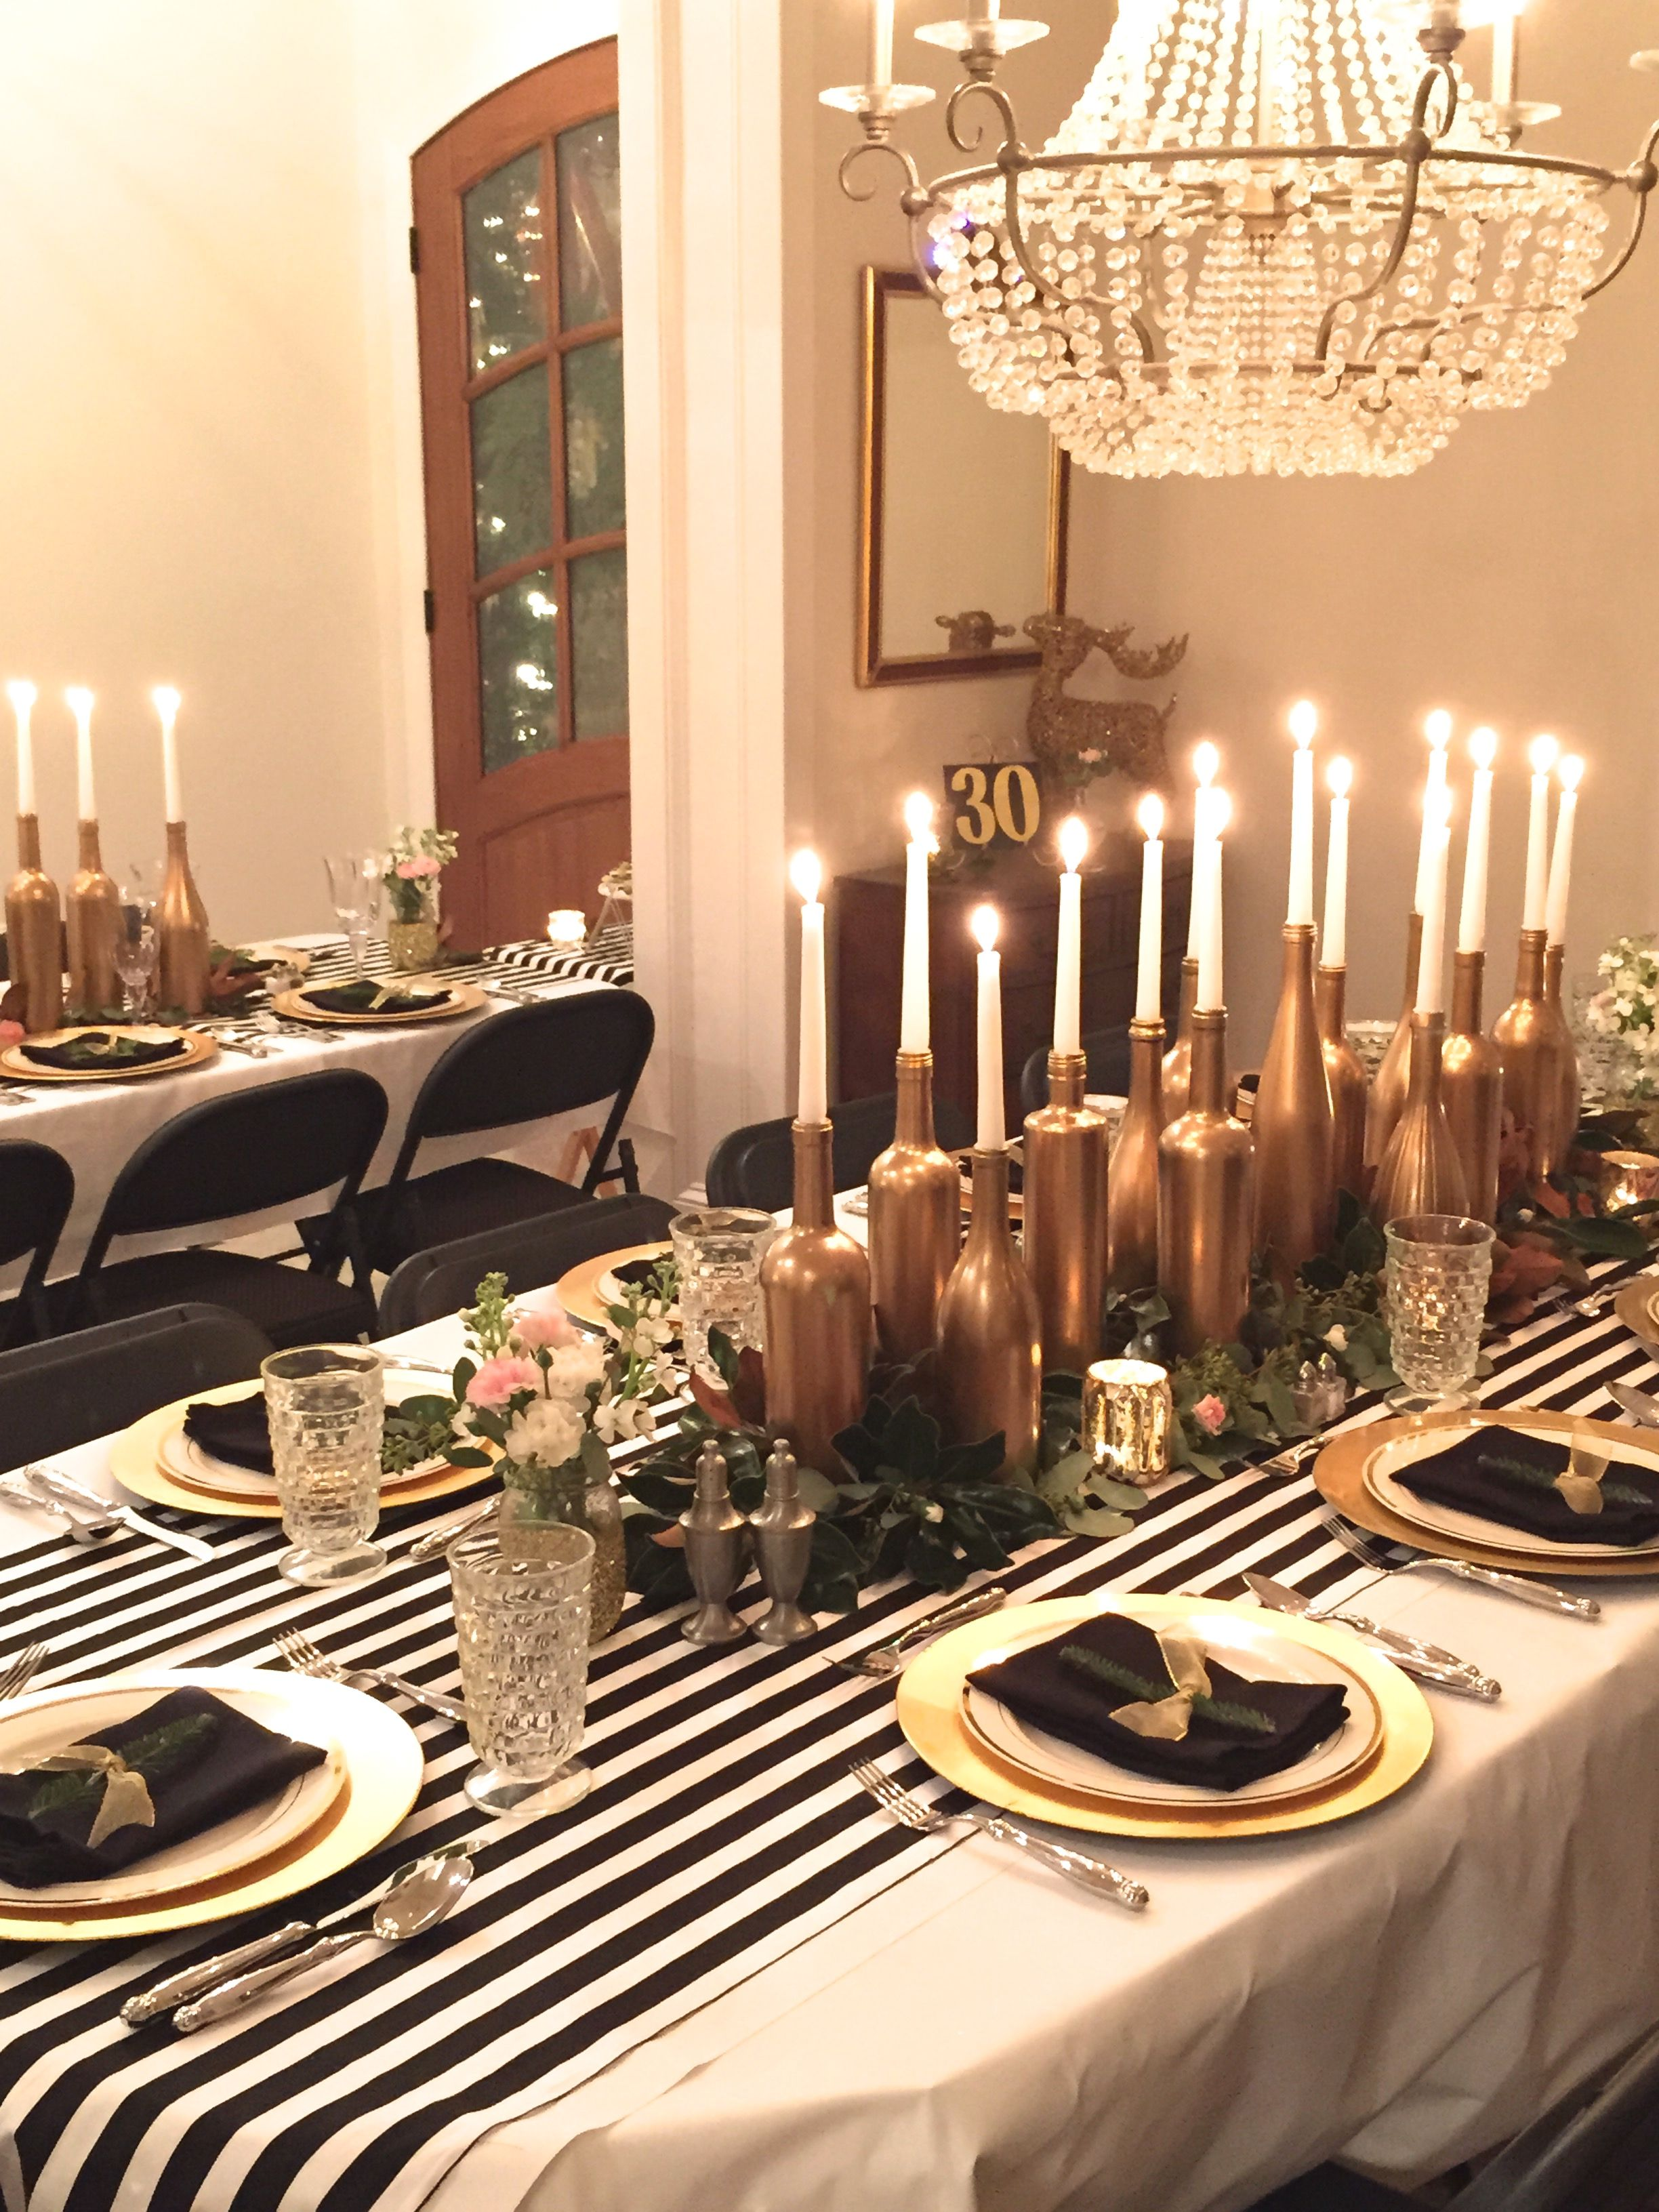 Exceptional 60th Birthday Dinner Party Ideas Part - 4: Gold, Black, And White: My Birthday Dinner Party - SevenLayerCharlotte